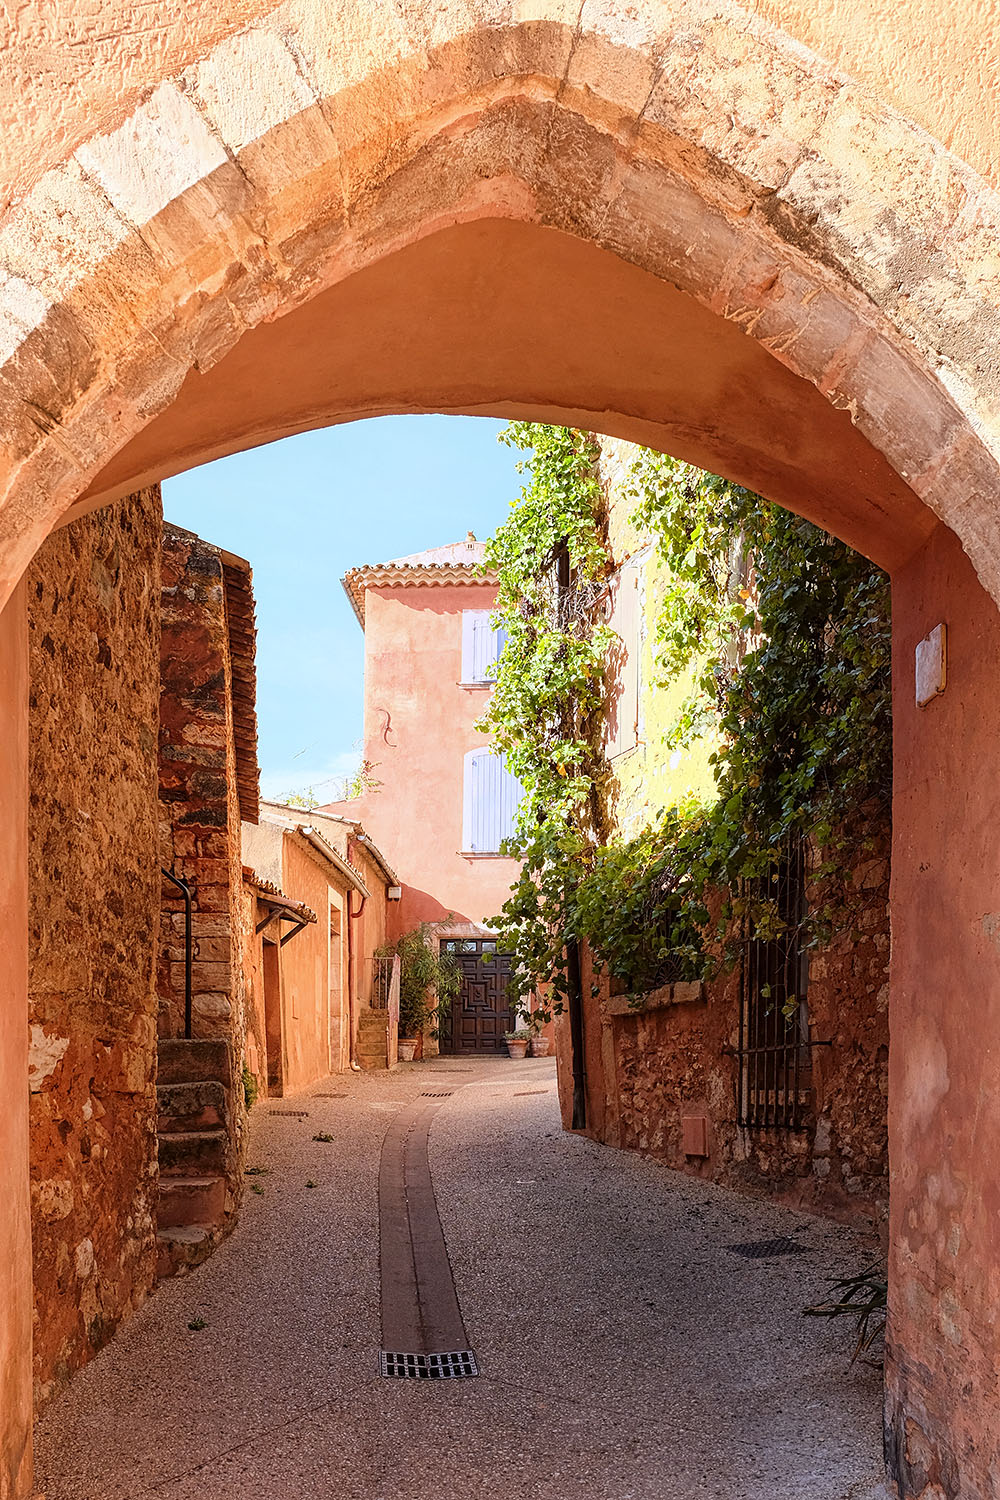 The Kiechle Family / Trips / Roussillon and the Ochre Trail